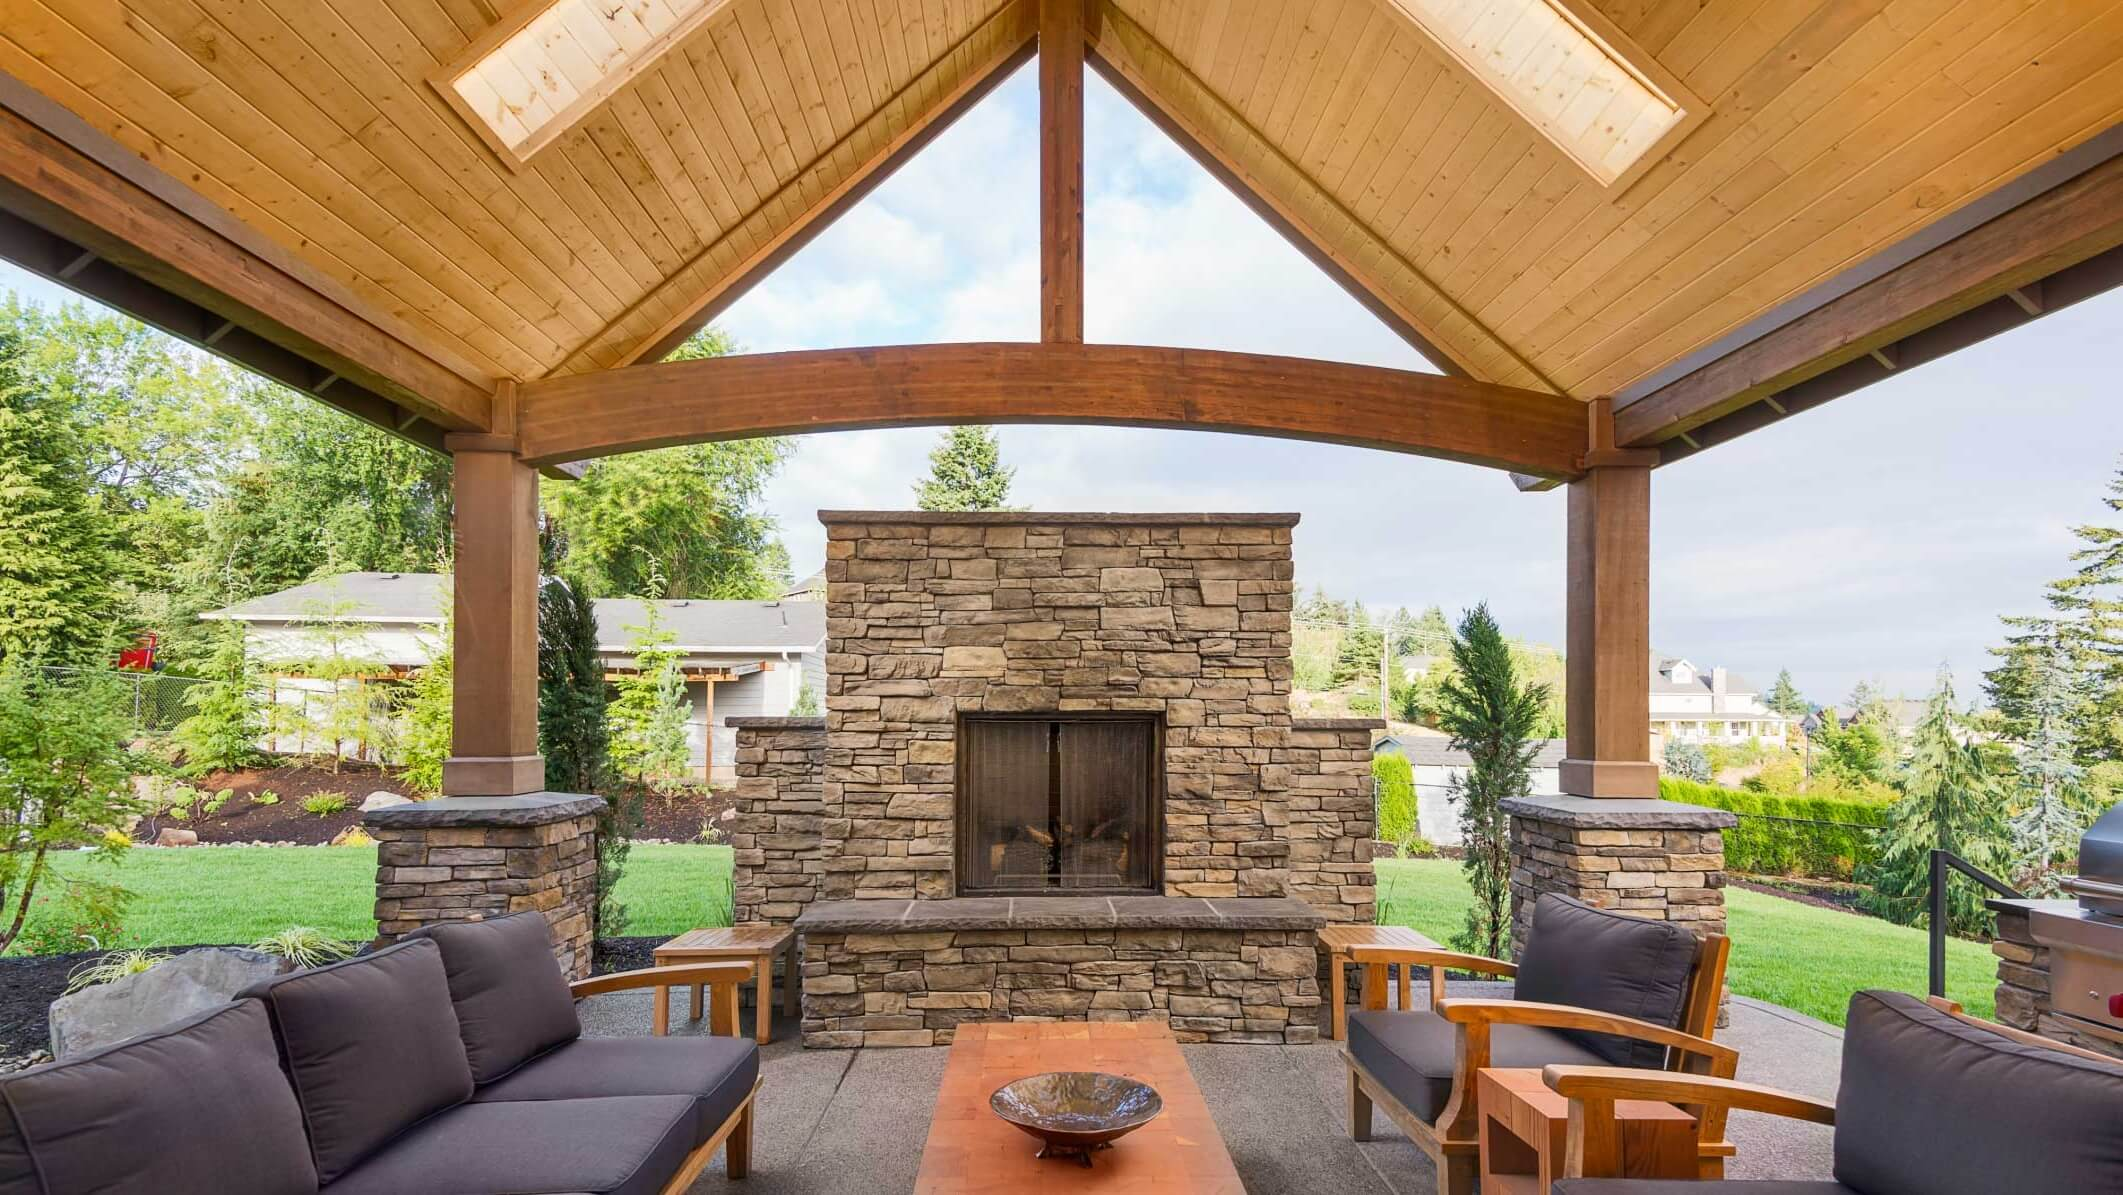 Make Your Patio Perfect with the Right Roof - Interior ... on Roof For Patio Ideas id=36661